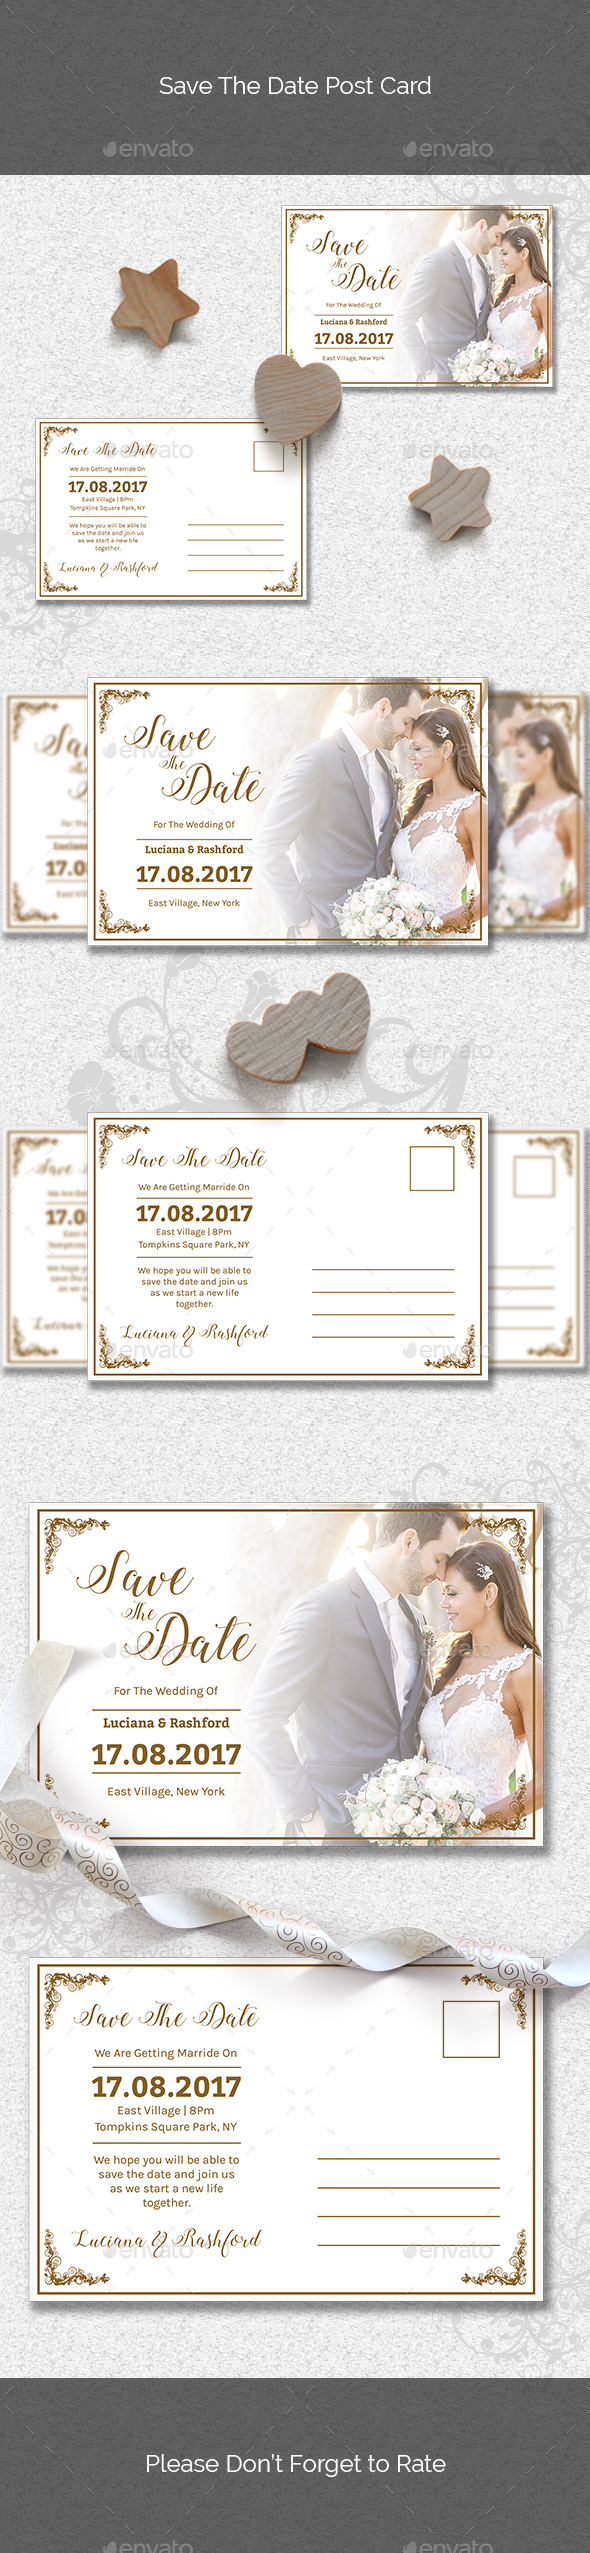 Save The Date Post Card - Cards & Invites Print Templates